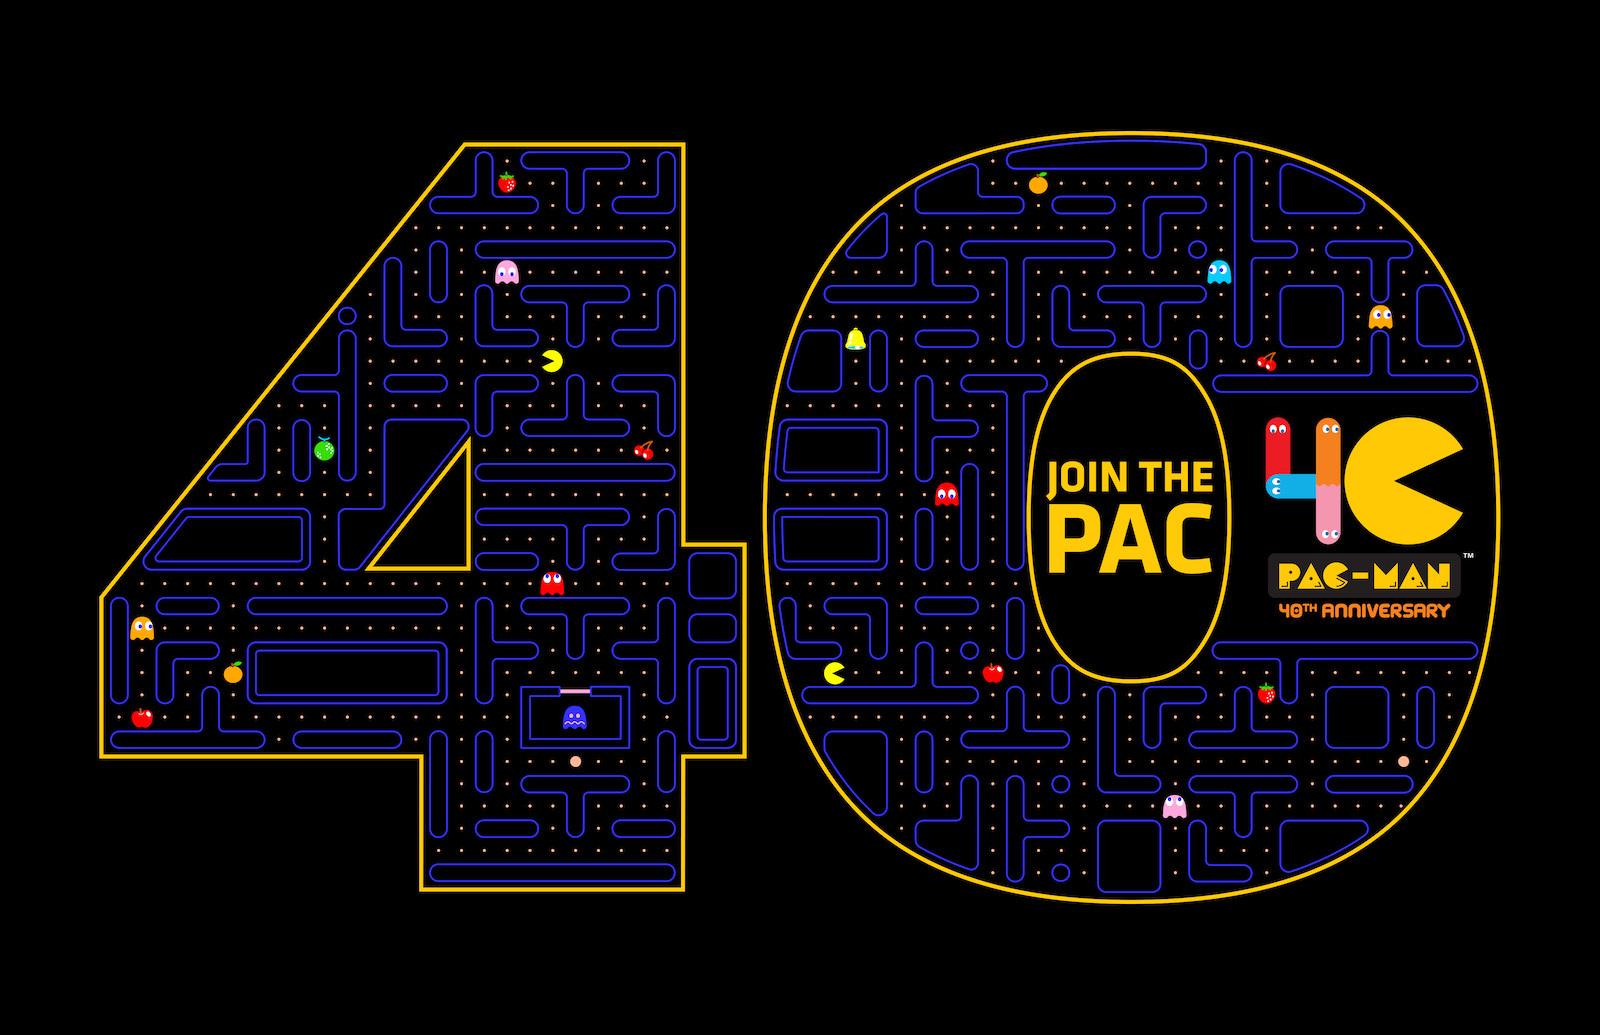 Pac Man The Original Video Game Super Star Celebrates His 40th Birthday Today Business Wire